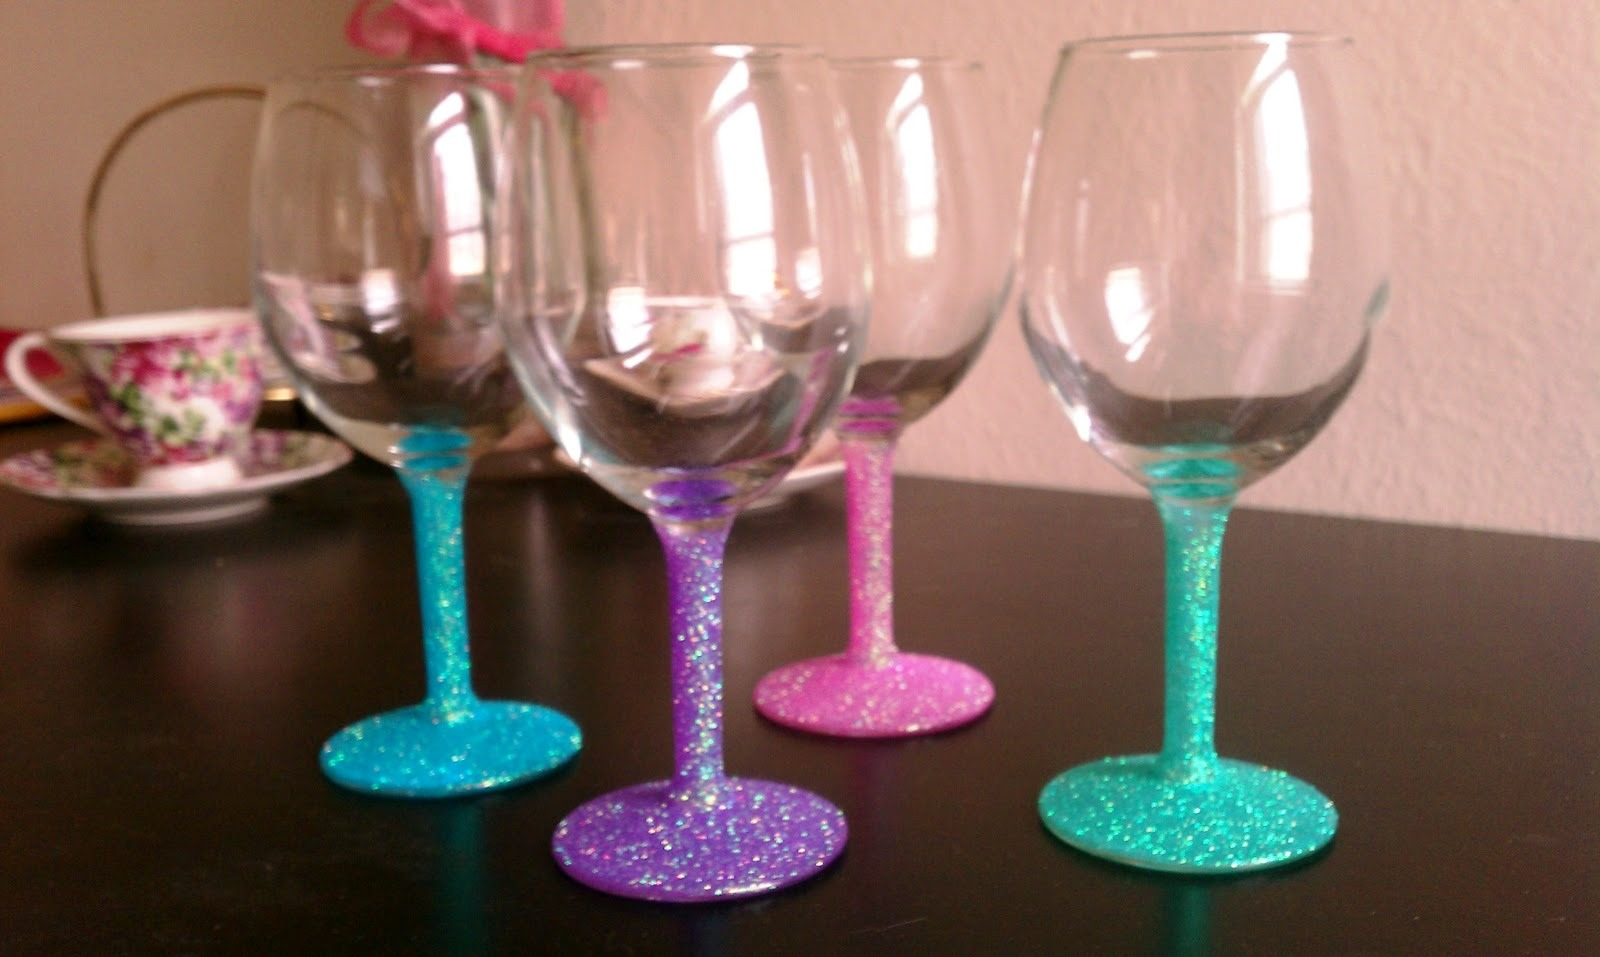 Glitter glasses It's not an obvious diy and it's sparkly! Everybody loves sparkles! http://blog.lulus.com/diy-2/diy-glitter-wine-glasses/